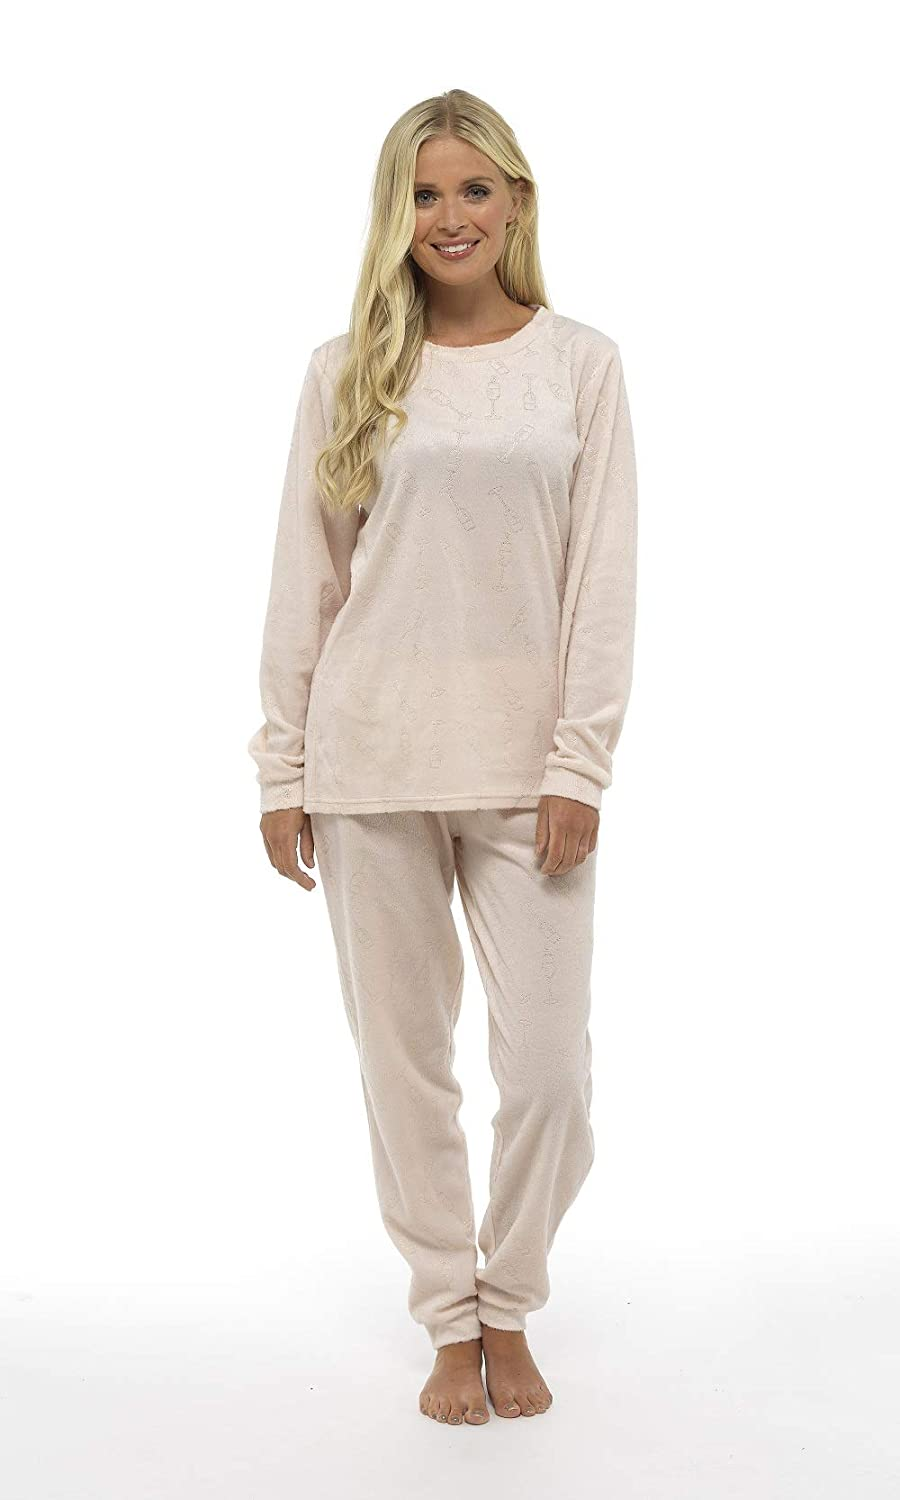 CityComfort Womens Pyjamas Set Pyjama for Women Pjs Sets Womens Loungewear Super Soft Lounge Wear Prosecco Star Feather